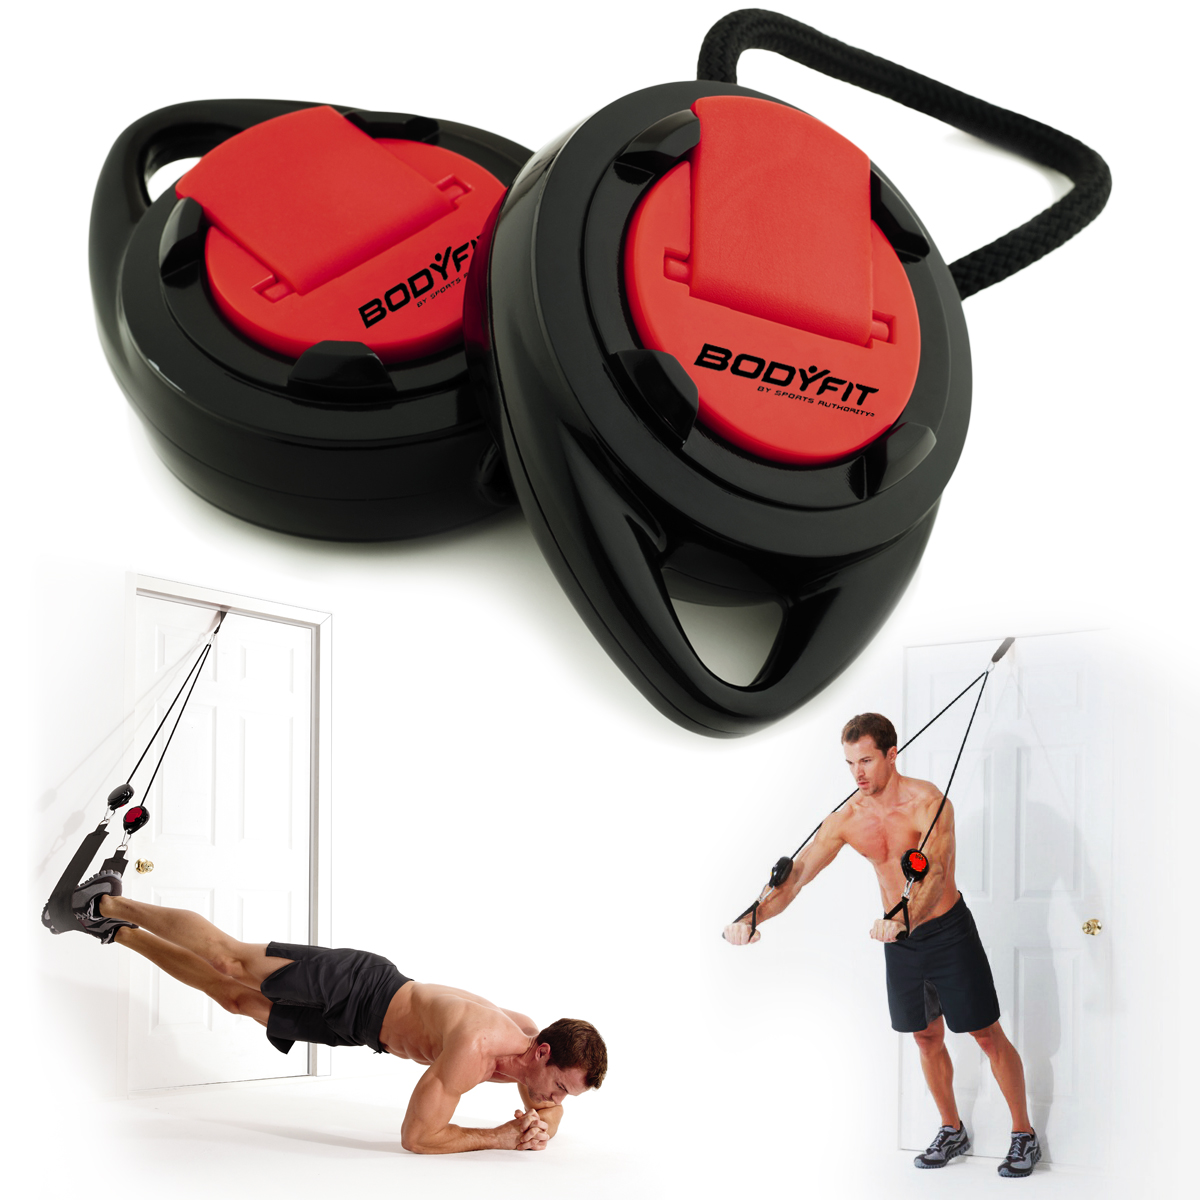 BodyFit Sports Authority Suspension Trainer Door Anchor Adjustable Straps Fitness DVD Exercise